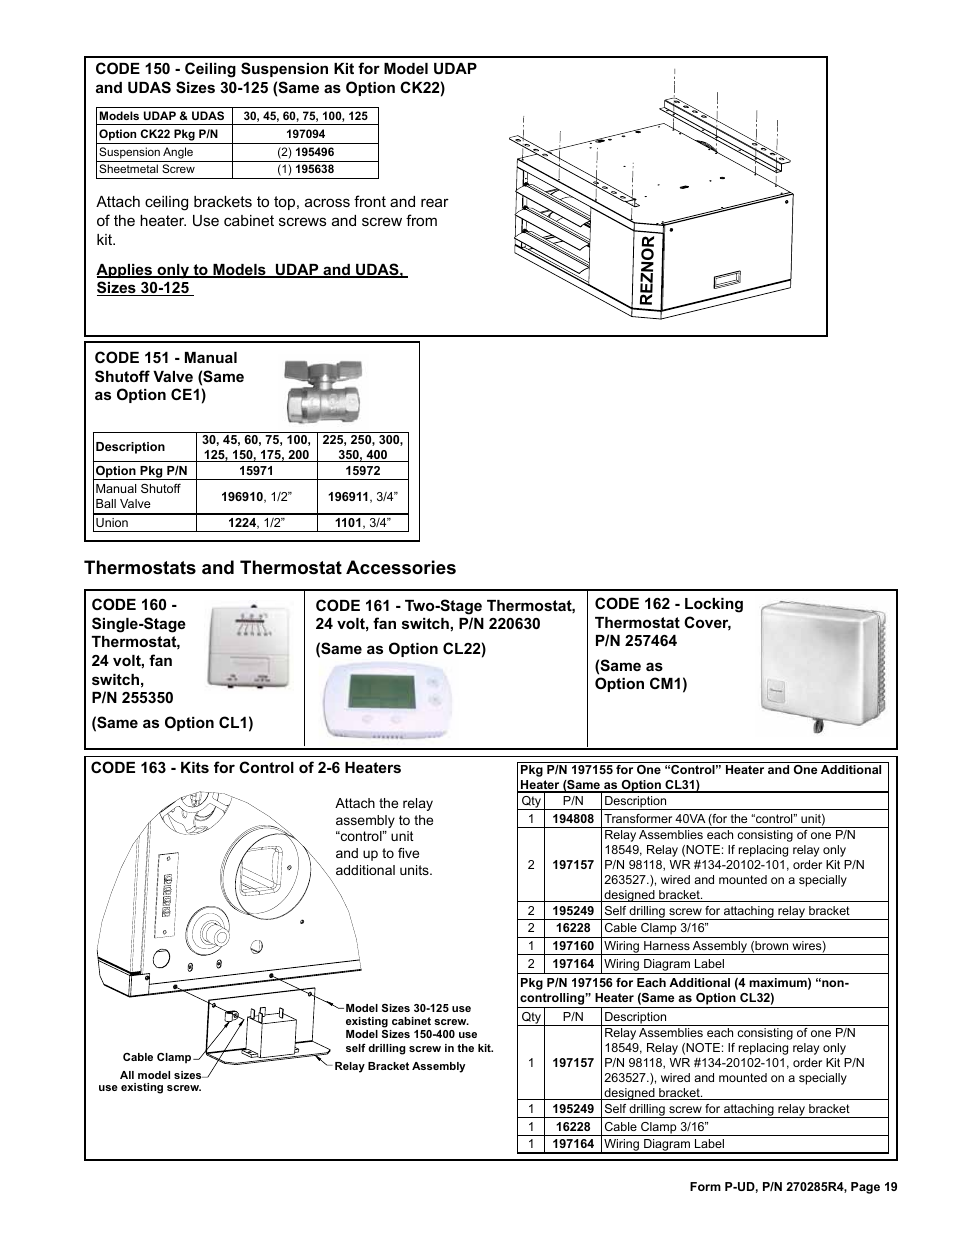 reznor udbp parts manuals page19 control of 2 6 heaters 19, option ce1 19, option ck22 19 reznor reznor udap wiring diagram at gsmx.co